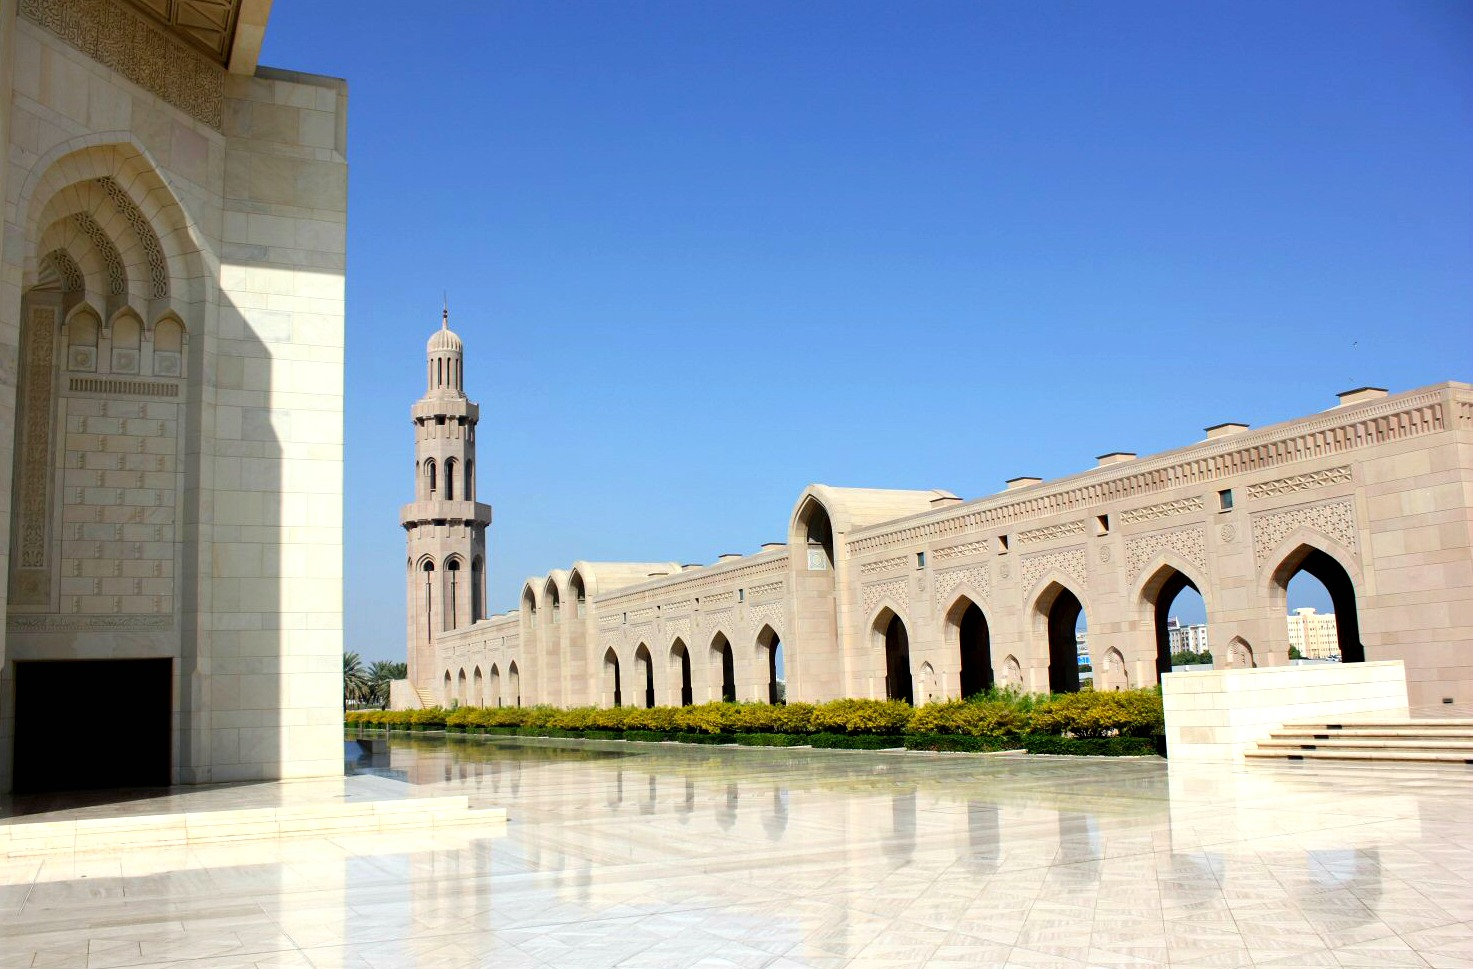 A view of a gleaming courtyard, minaret and buildings of the Sultan Qaboos Grand Mosque in Muscat Oman - the beautiful architecture is one of my nine reasons to visit Oman with kids